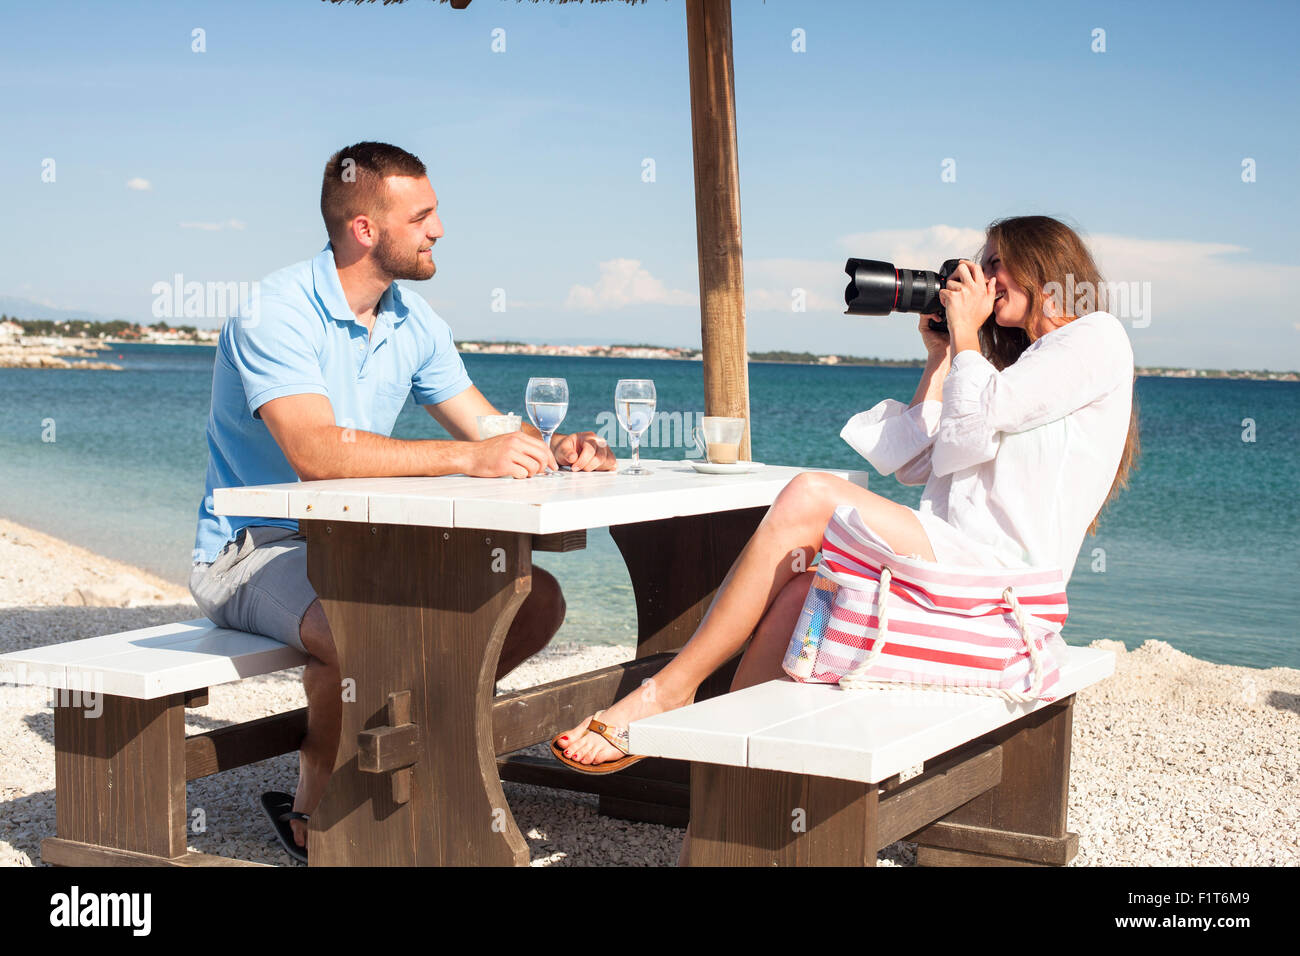 Young woman at beach bar taking photos of friend - Stock Image